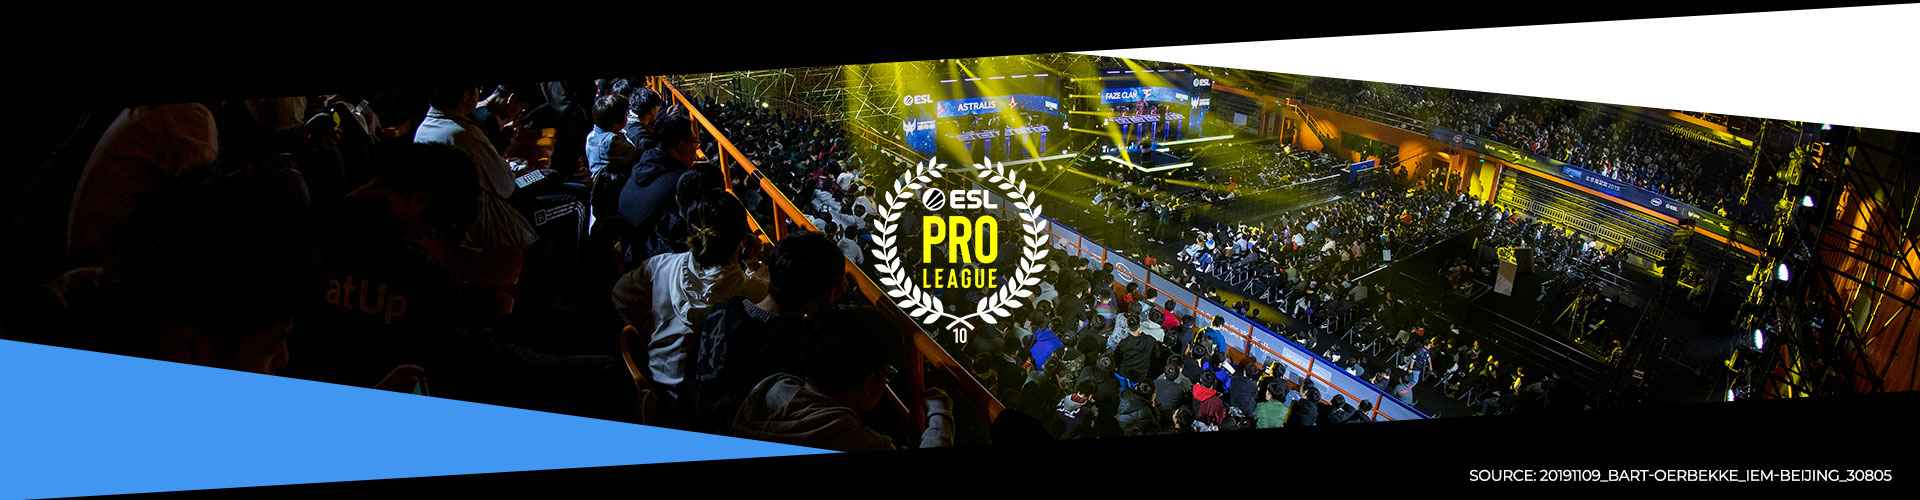 First Look at ESL Pro League Odense